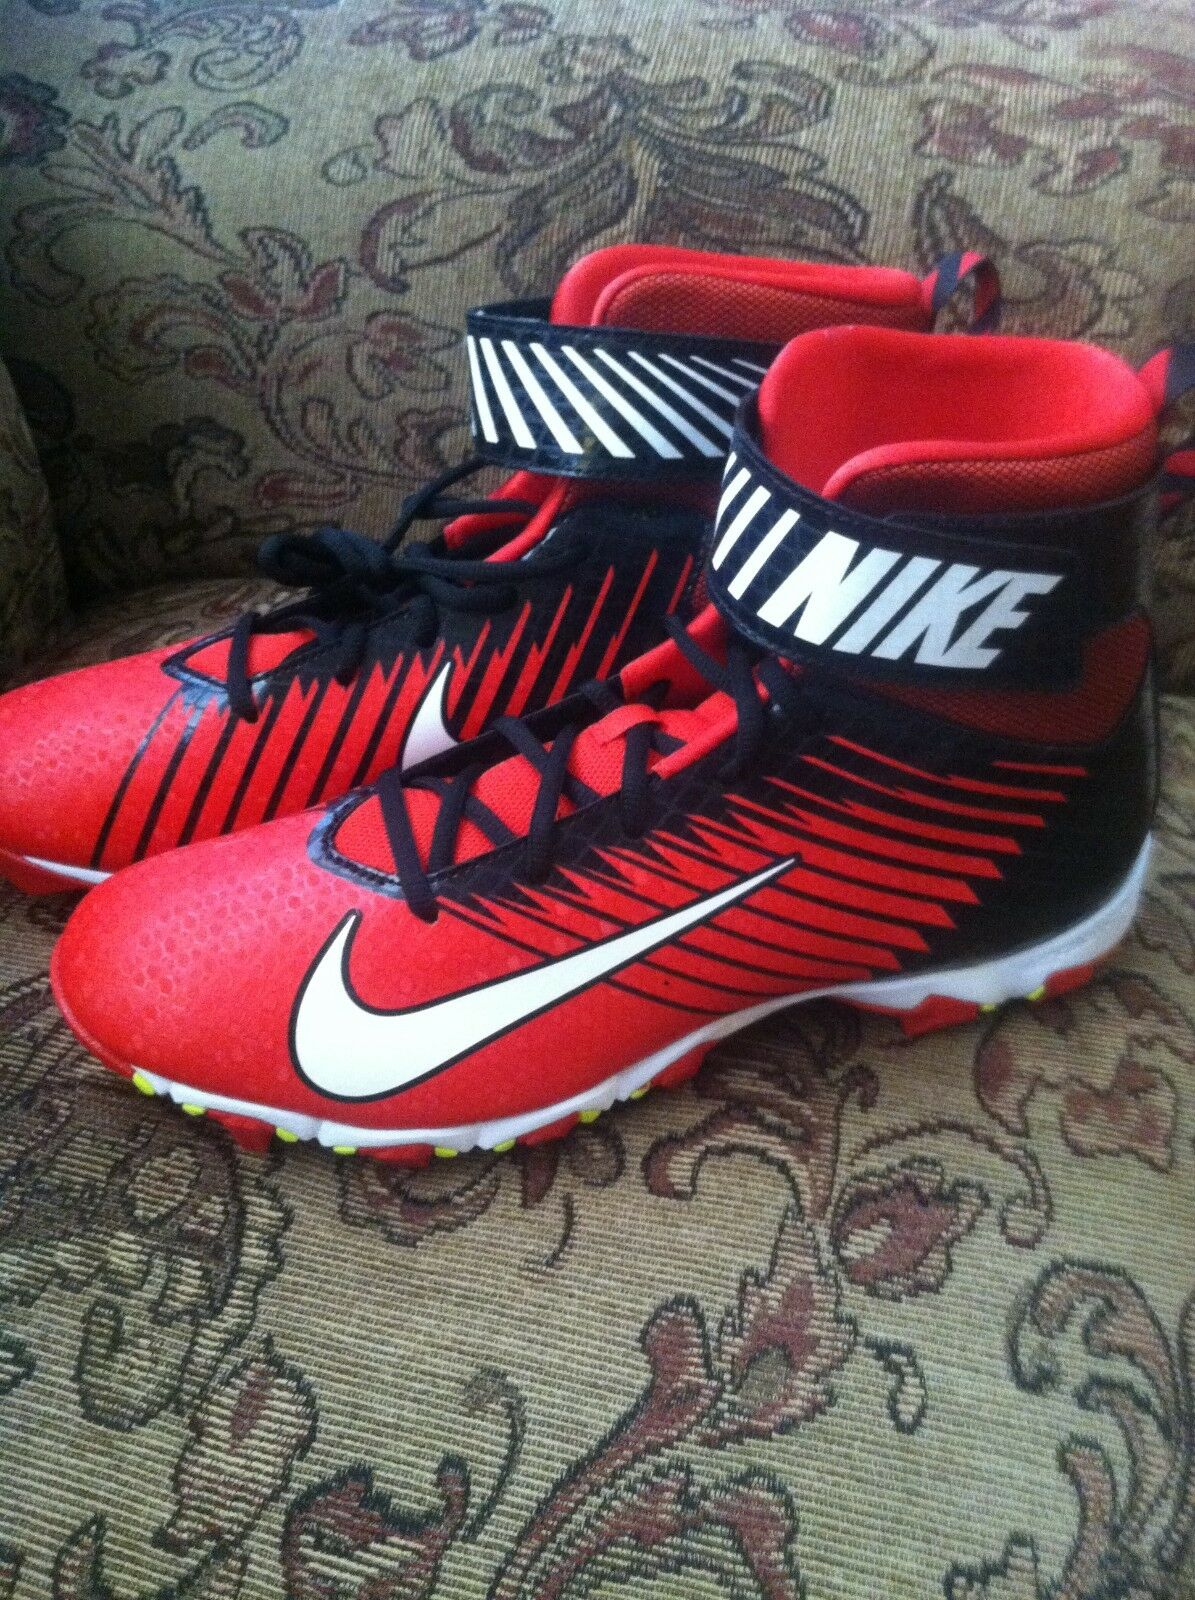 Nike Men's Strike Shark Football Cleats Shoes Red & Black New size 13